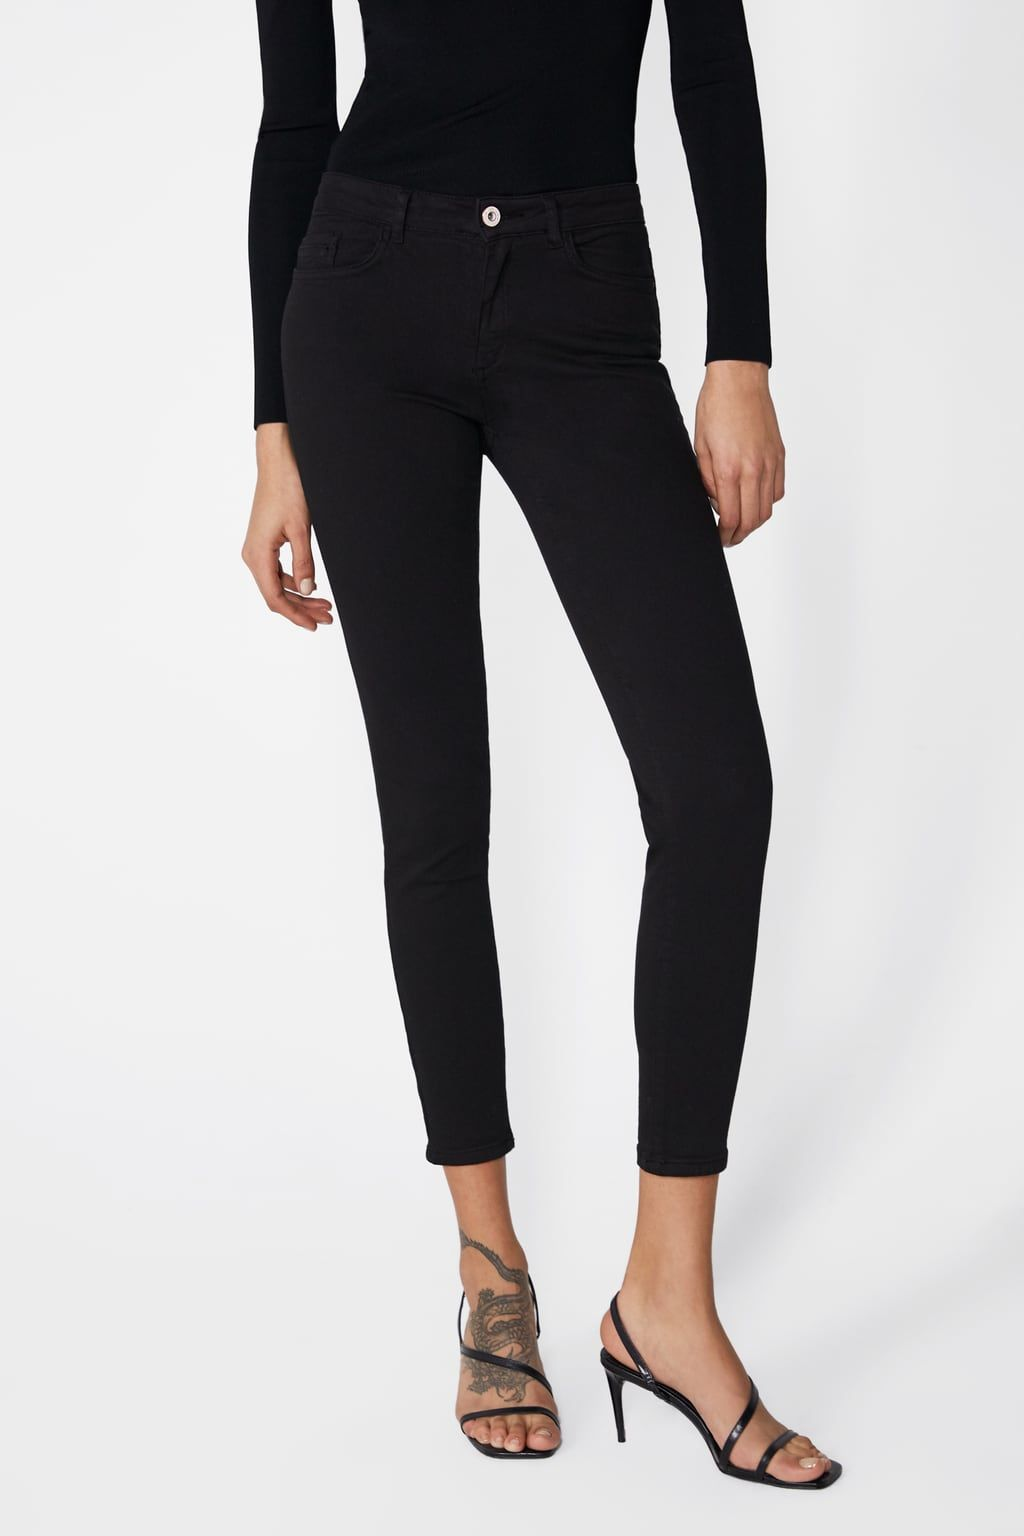 115a4e8ad6 Image 2 of SKINNY TROUSERS from Zara | stuff to buy ekkor: 2019 ...